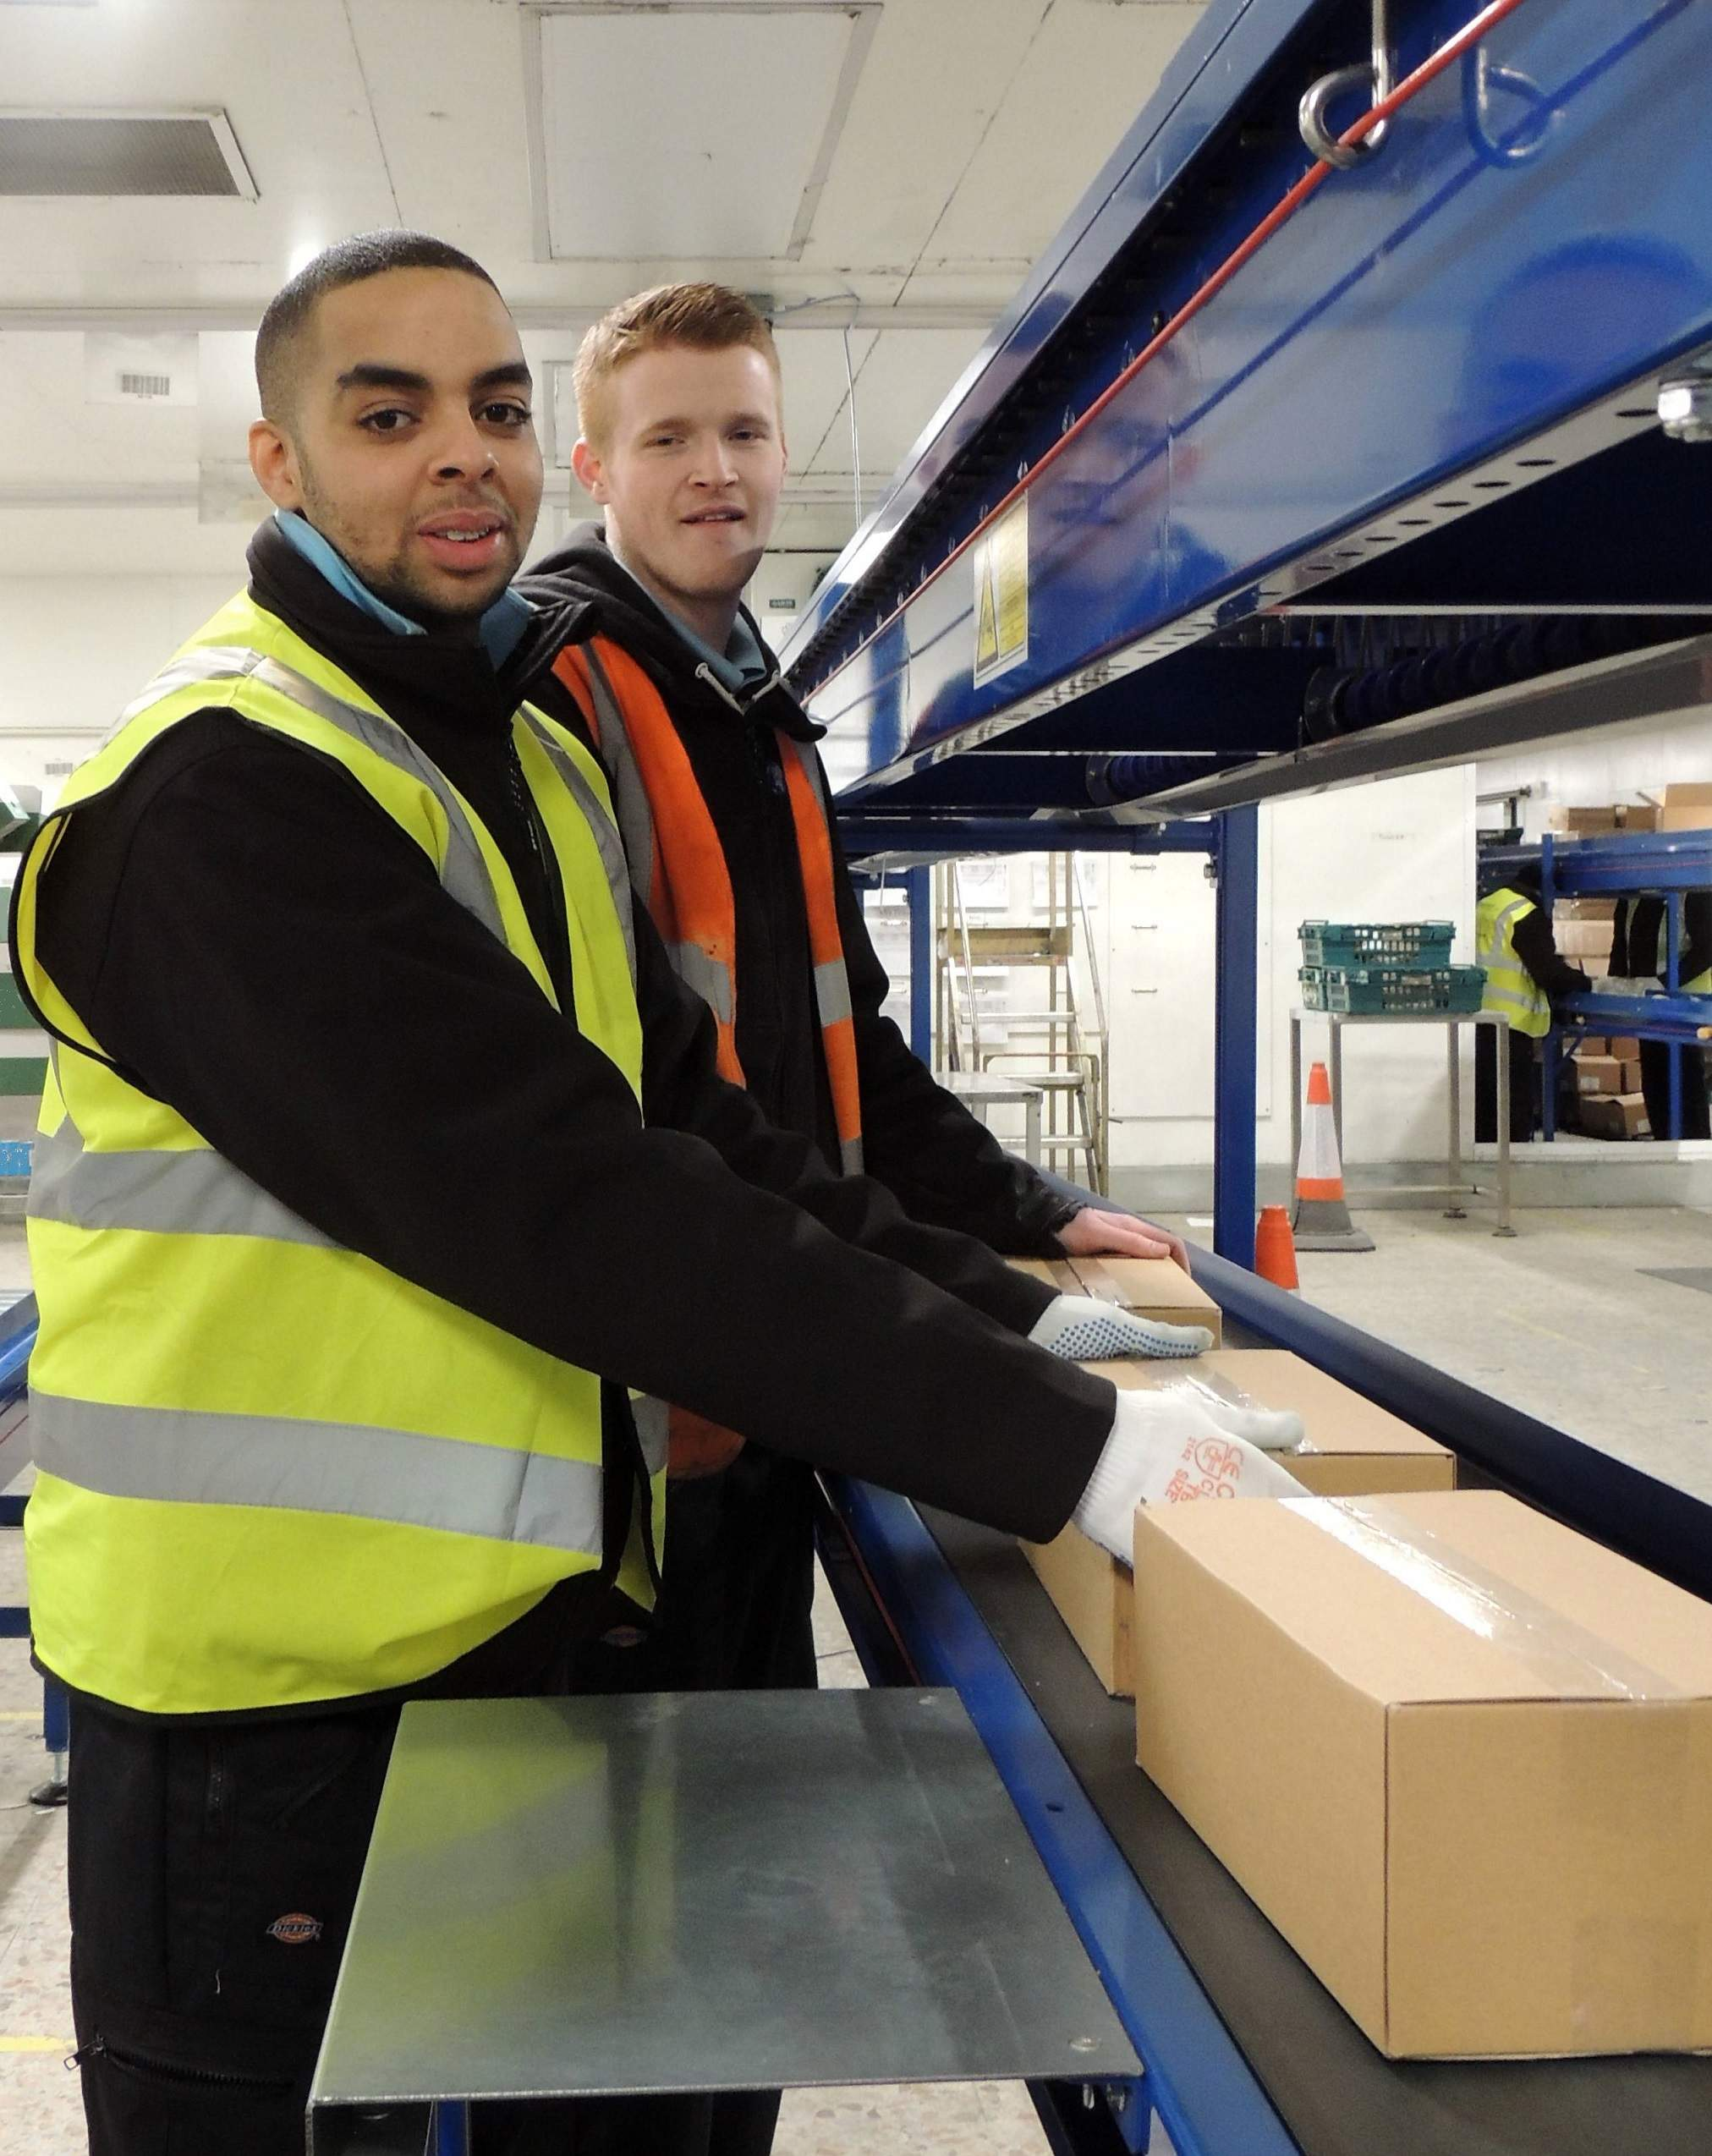 Oakland International adds strength to its contract packing services with £200k investment.